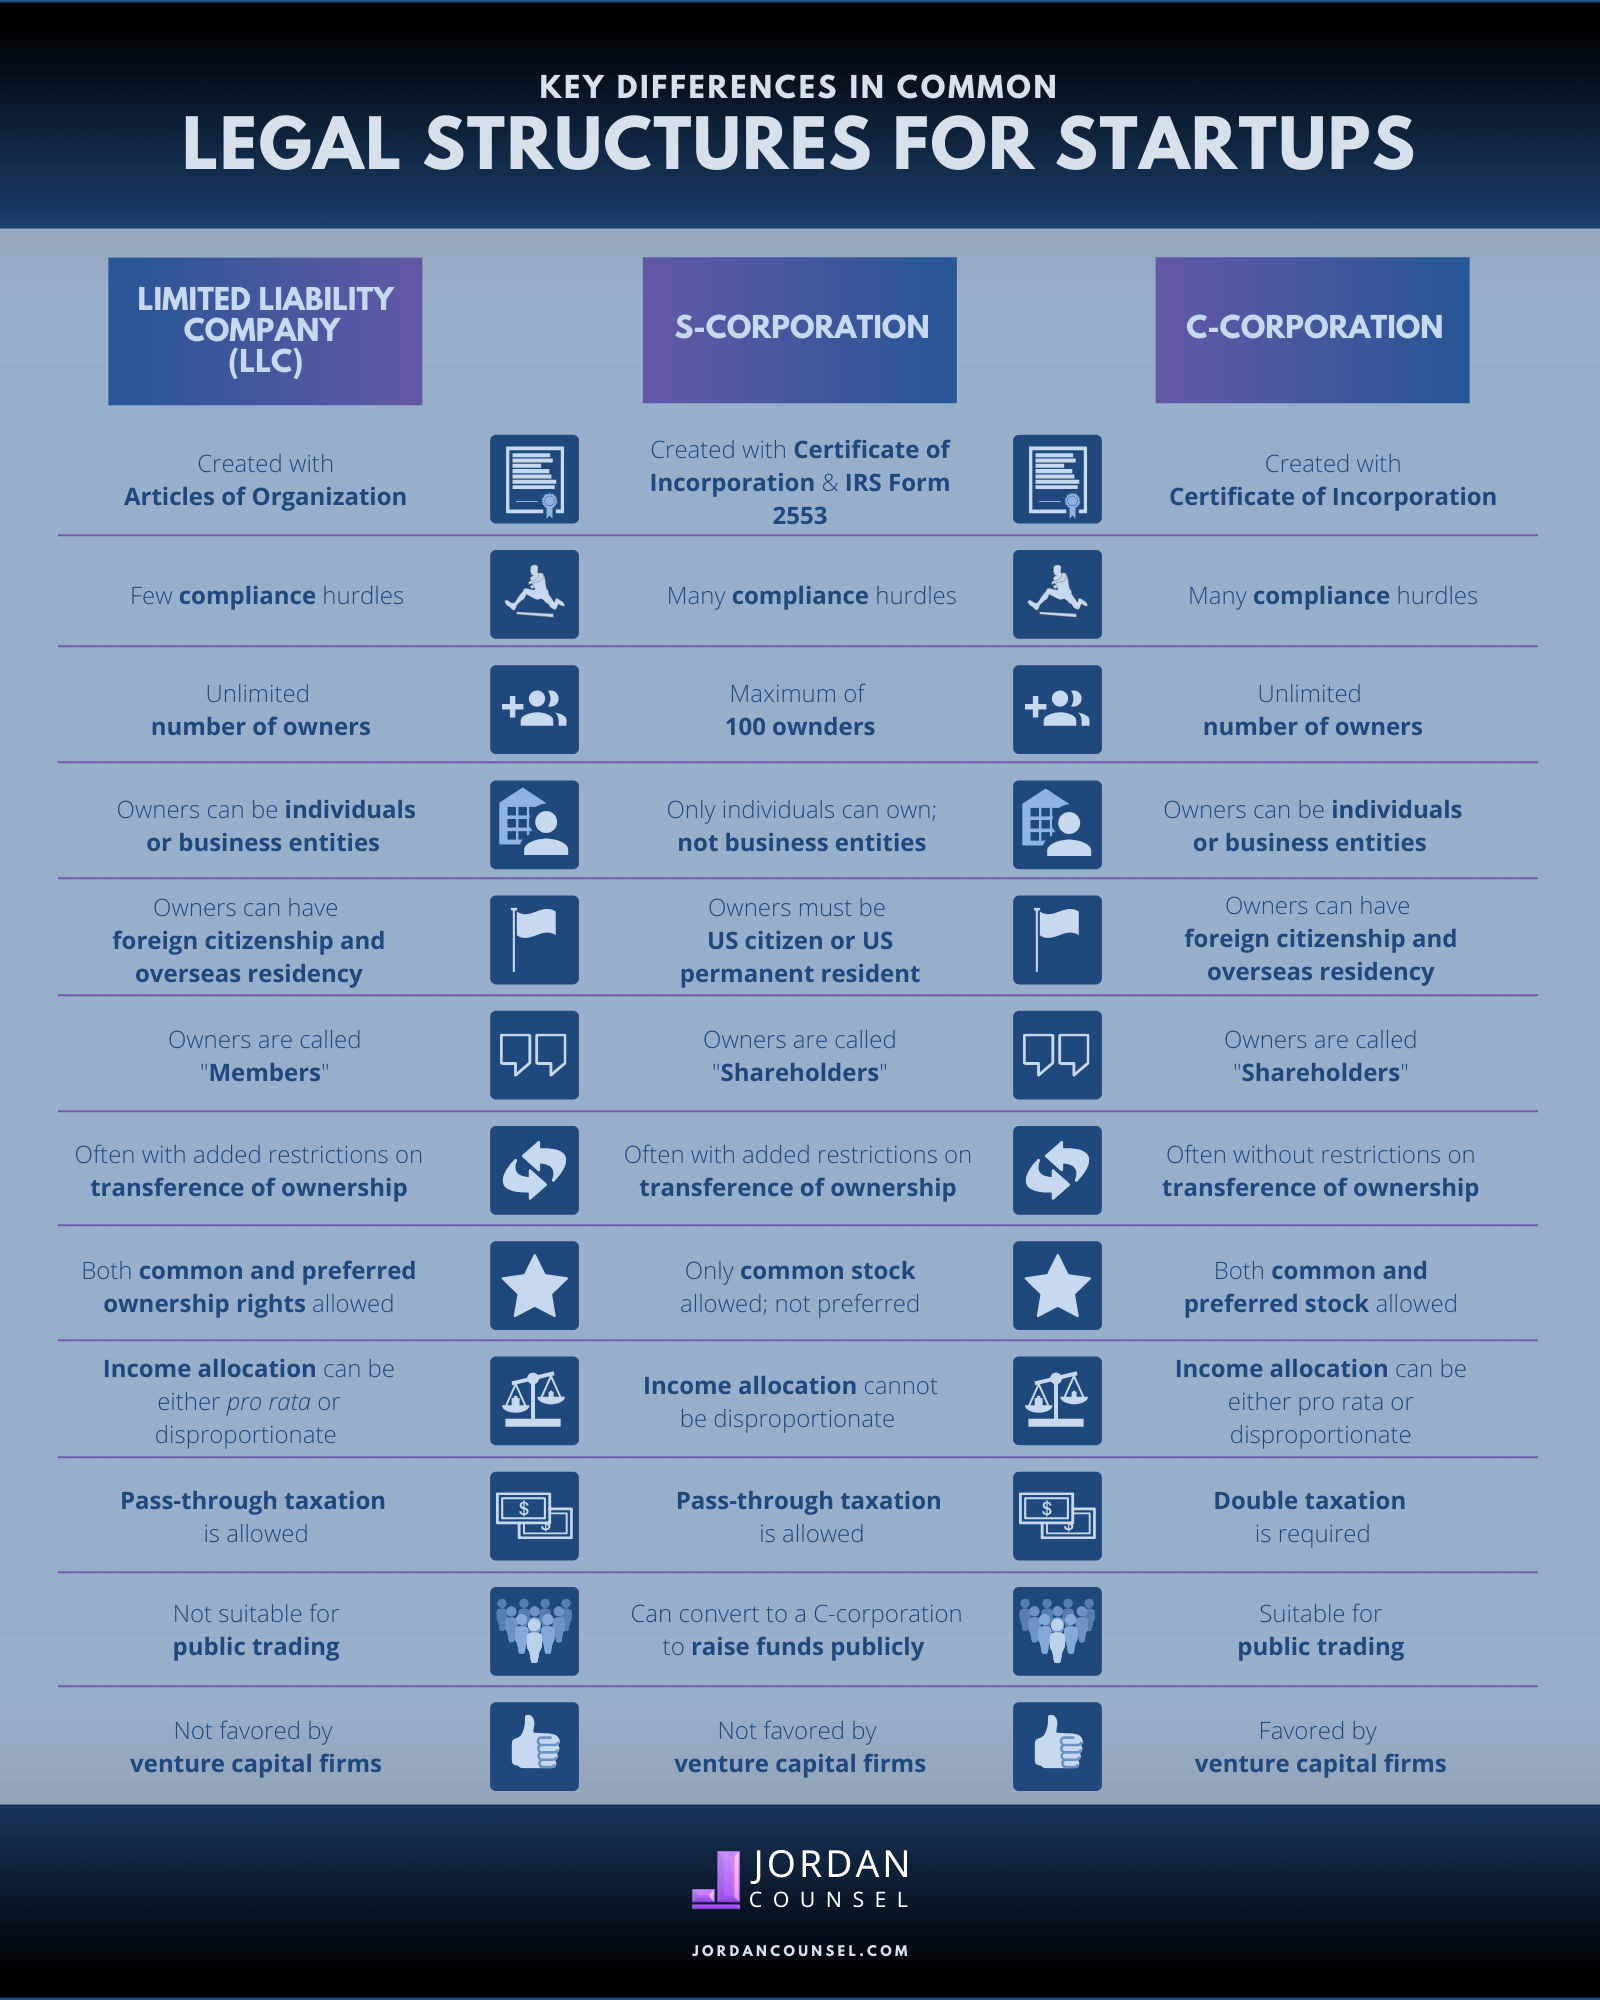 Infographic comparing major differences between LLC, C-corporation and S-corporation